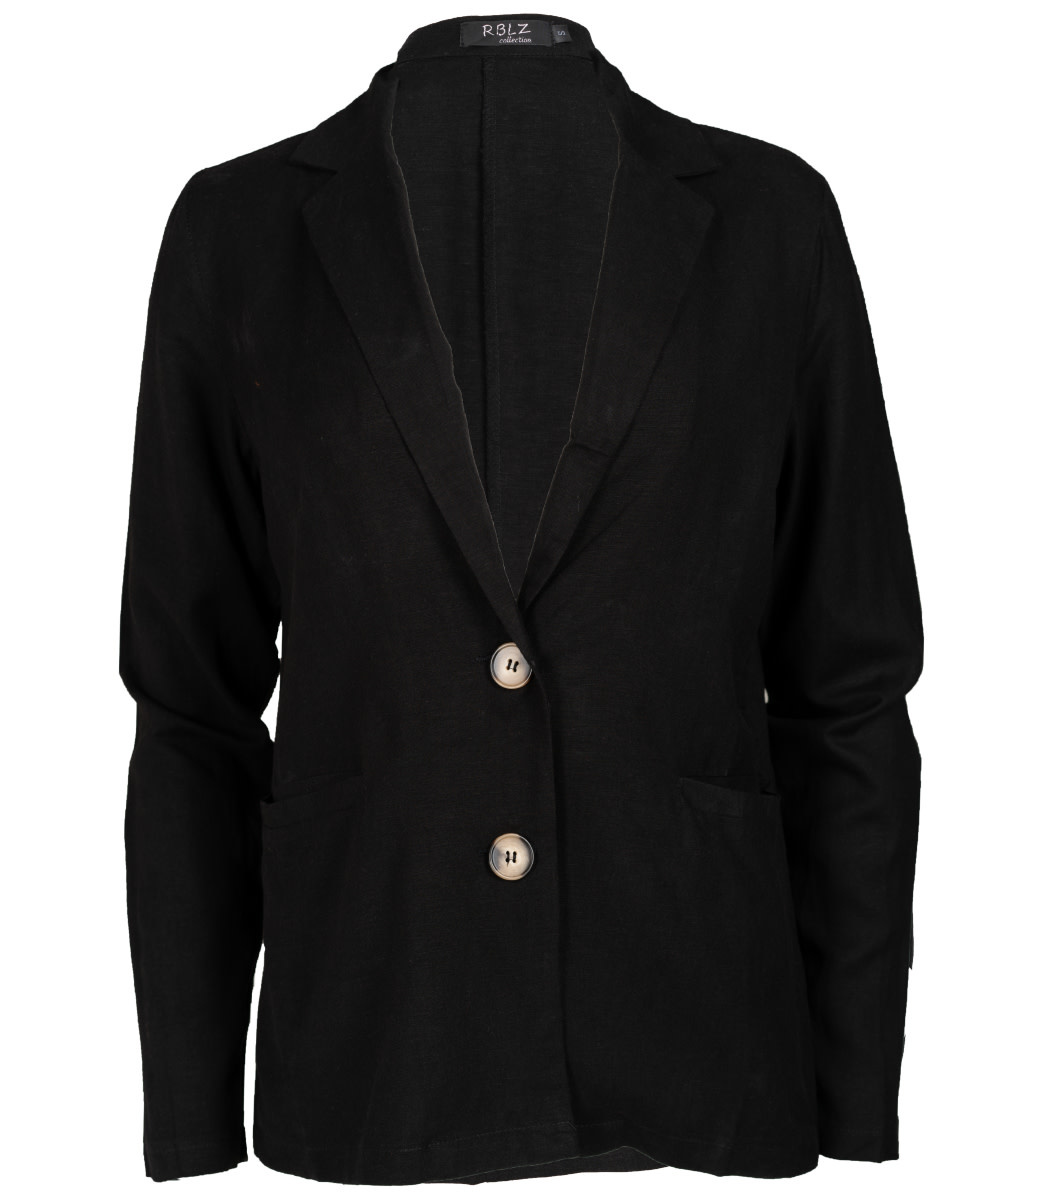 Rebelz Collection Blazer linnen zwart